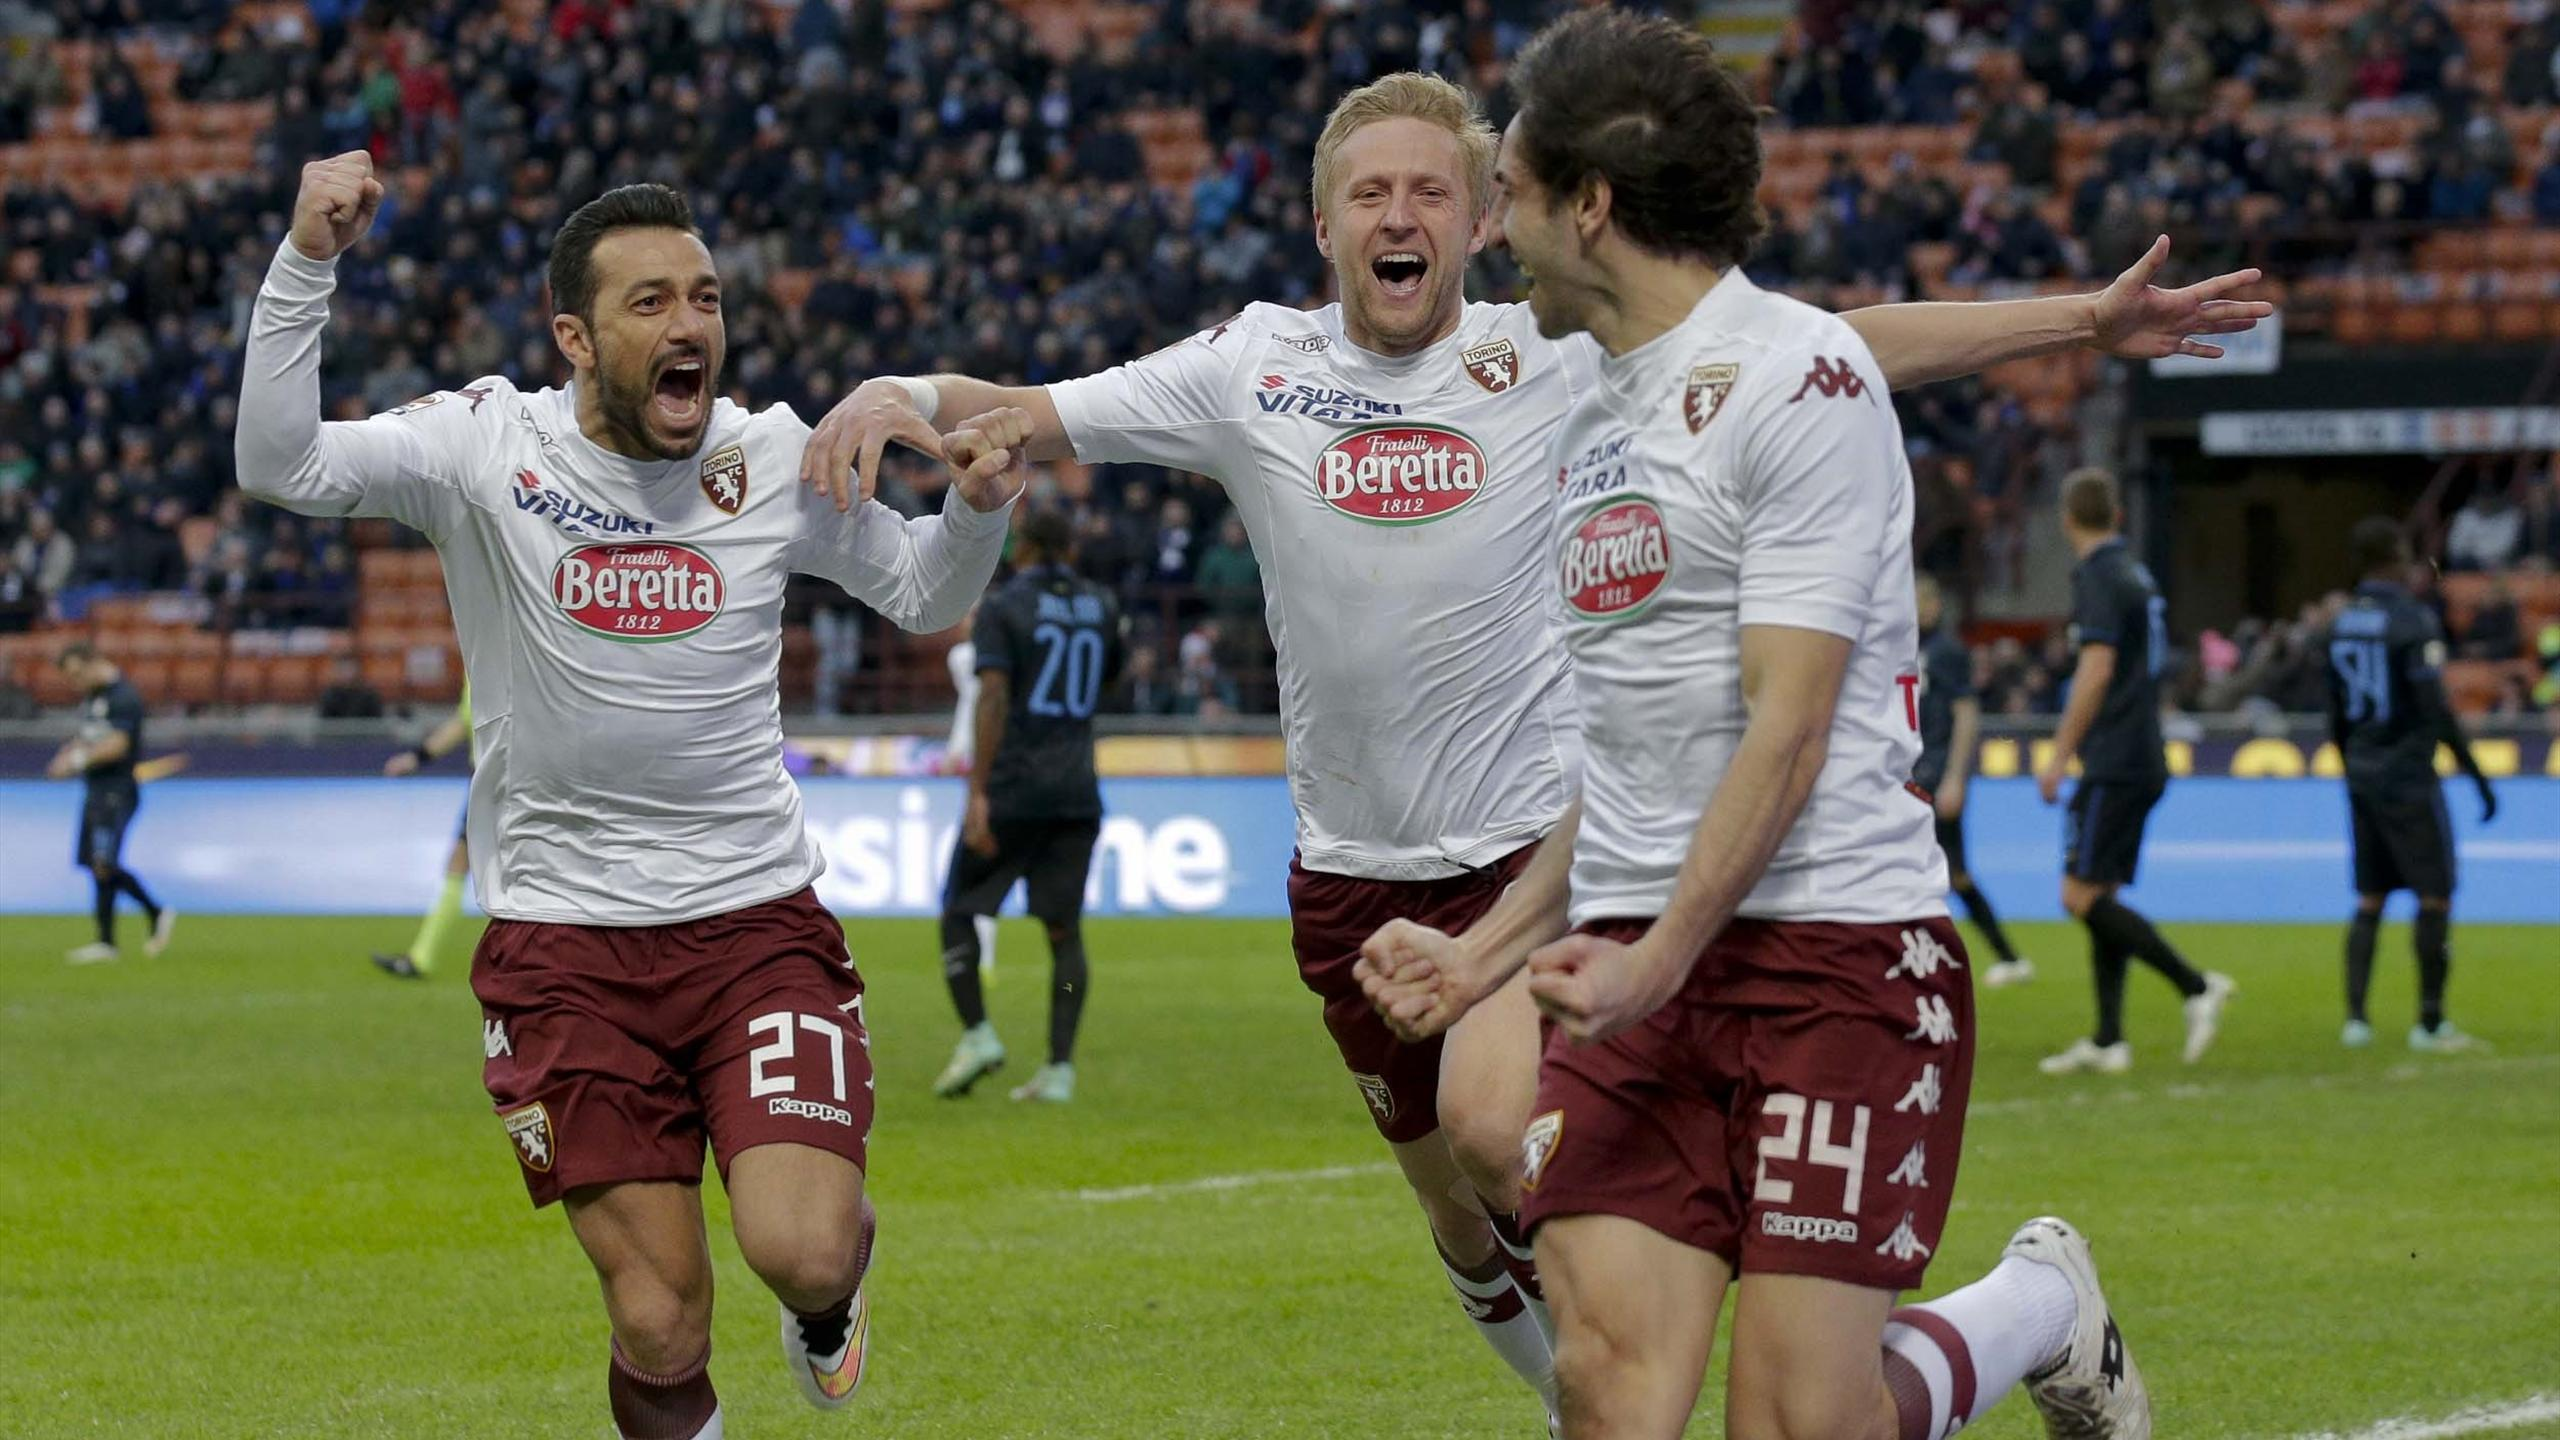 Video: Inter Milan vs Torino